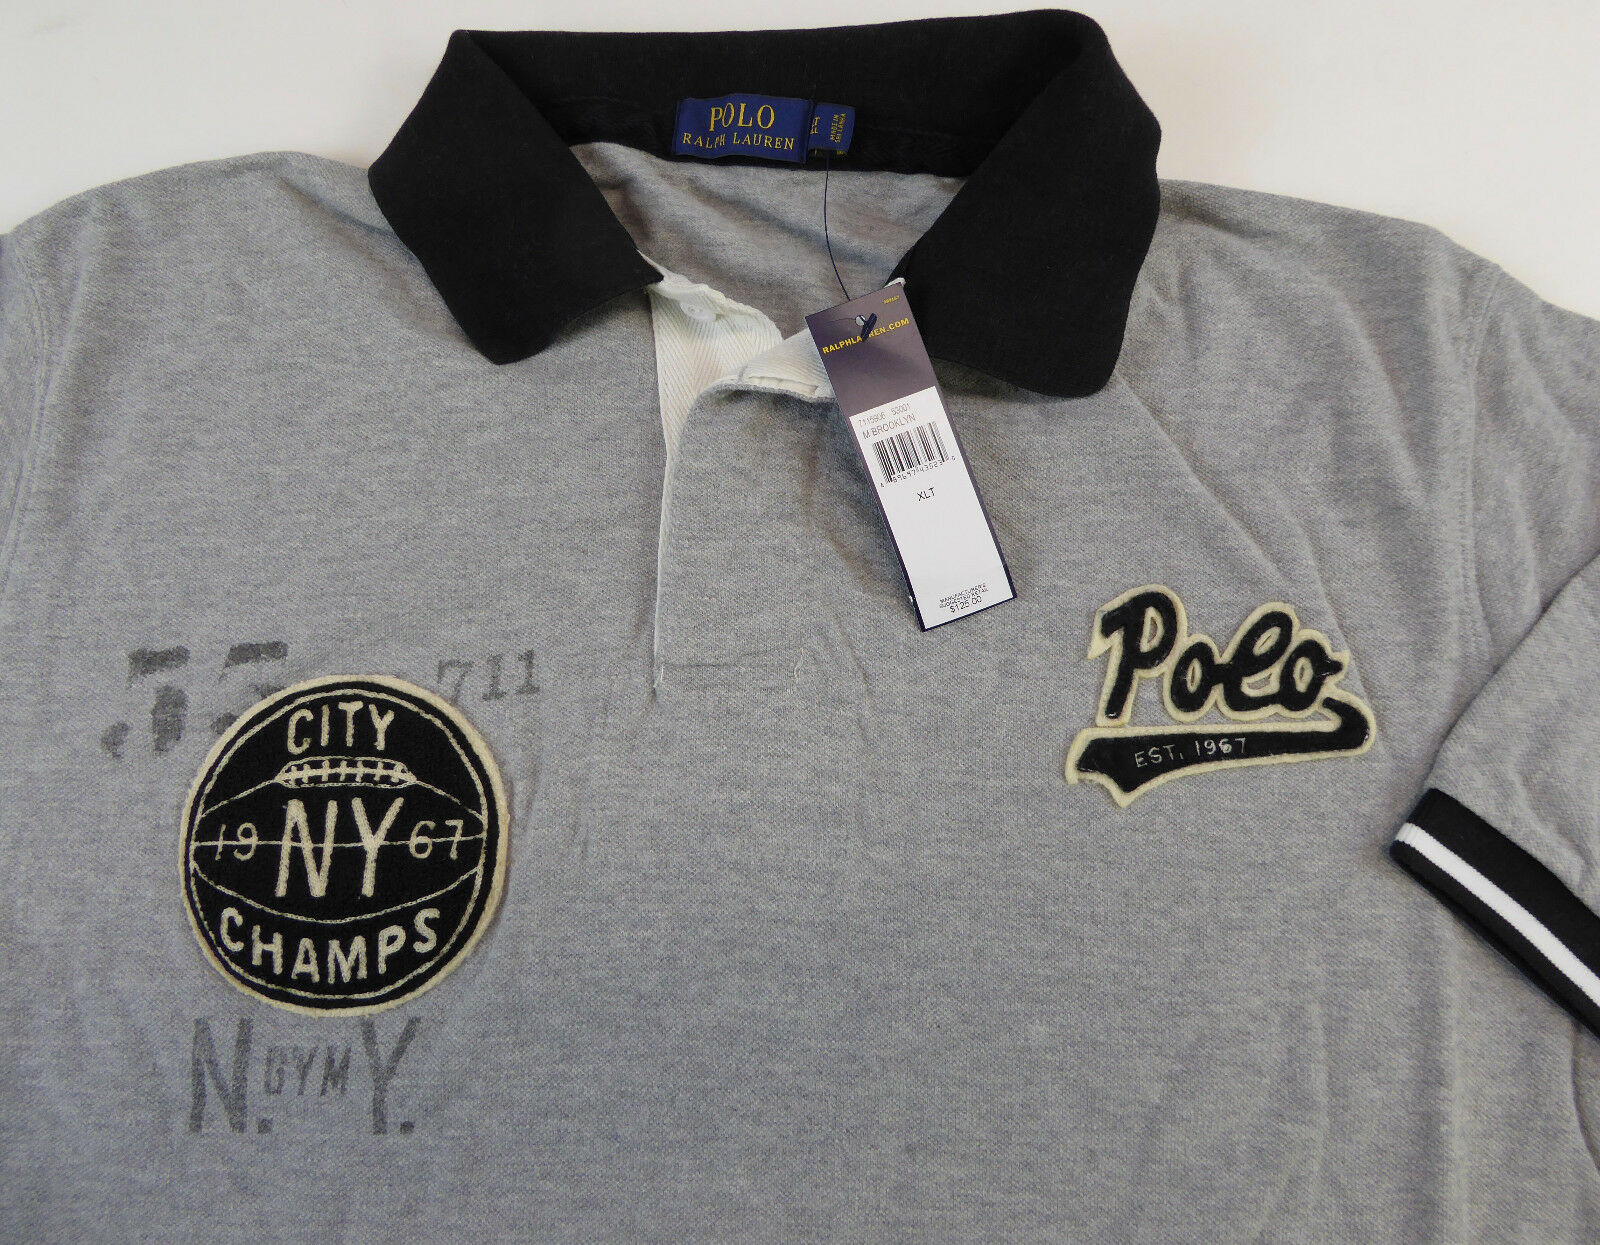 Polo Ralph Lauren SS Rugby Shirt  125 Brooklyn Basketball NY City Champs 67  NWT